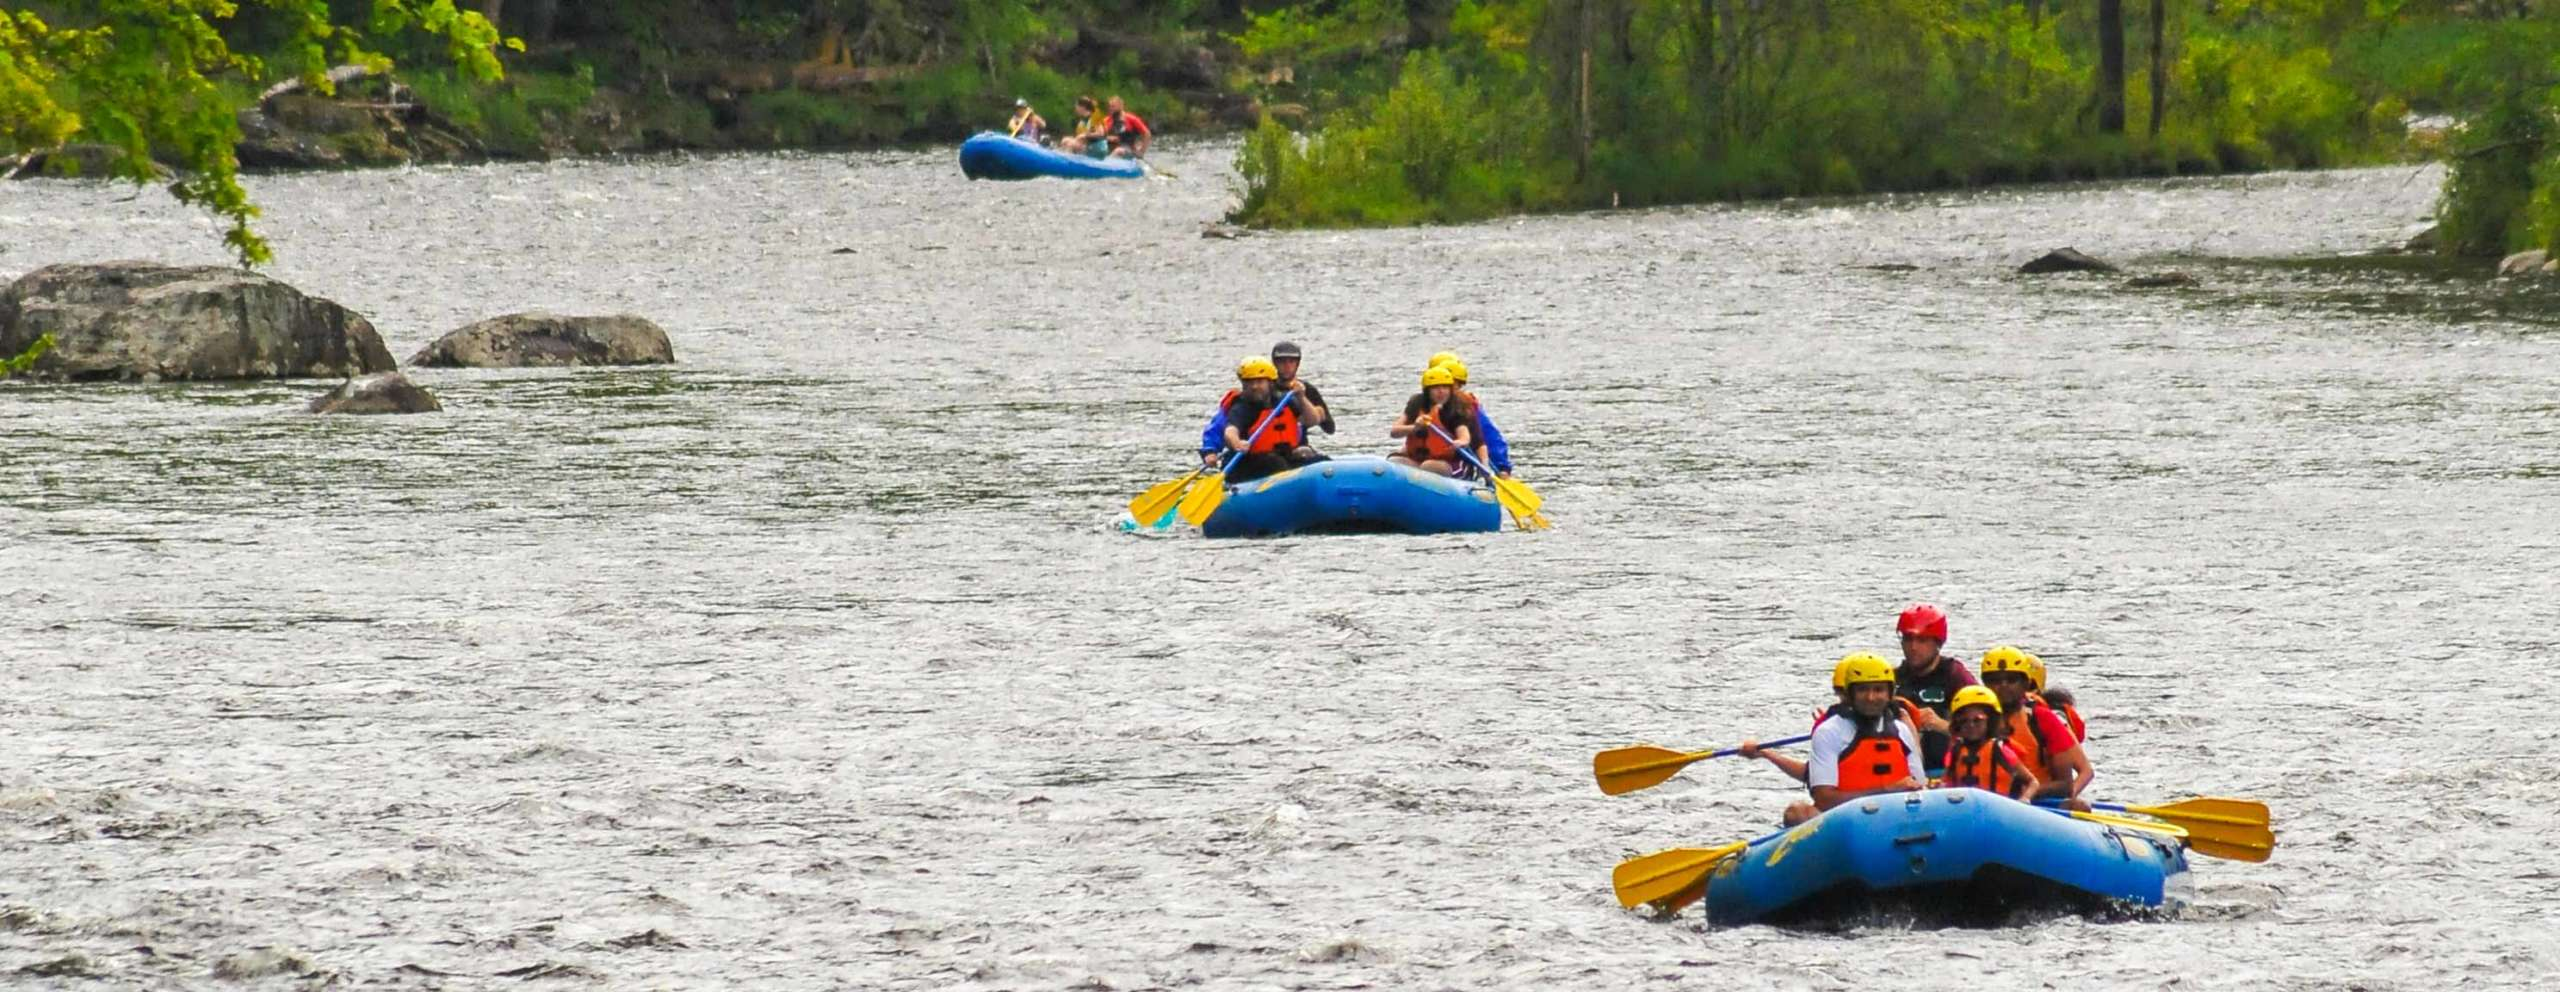 Families in rafts floating down a river